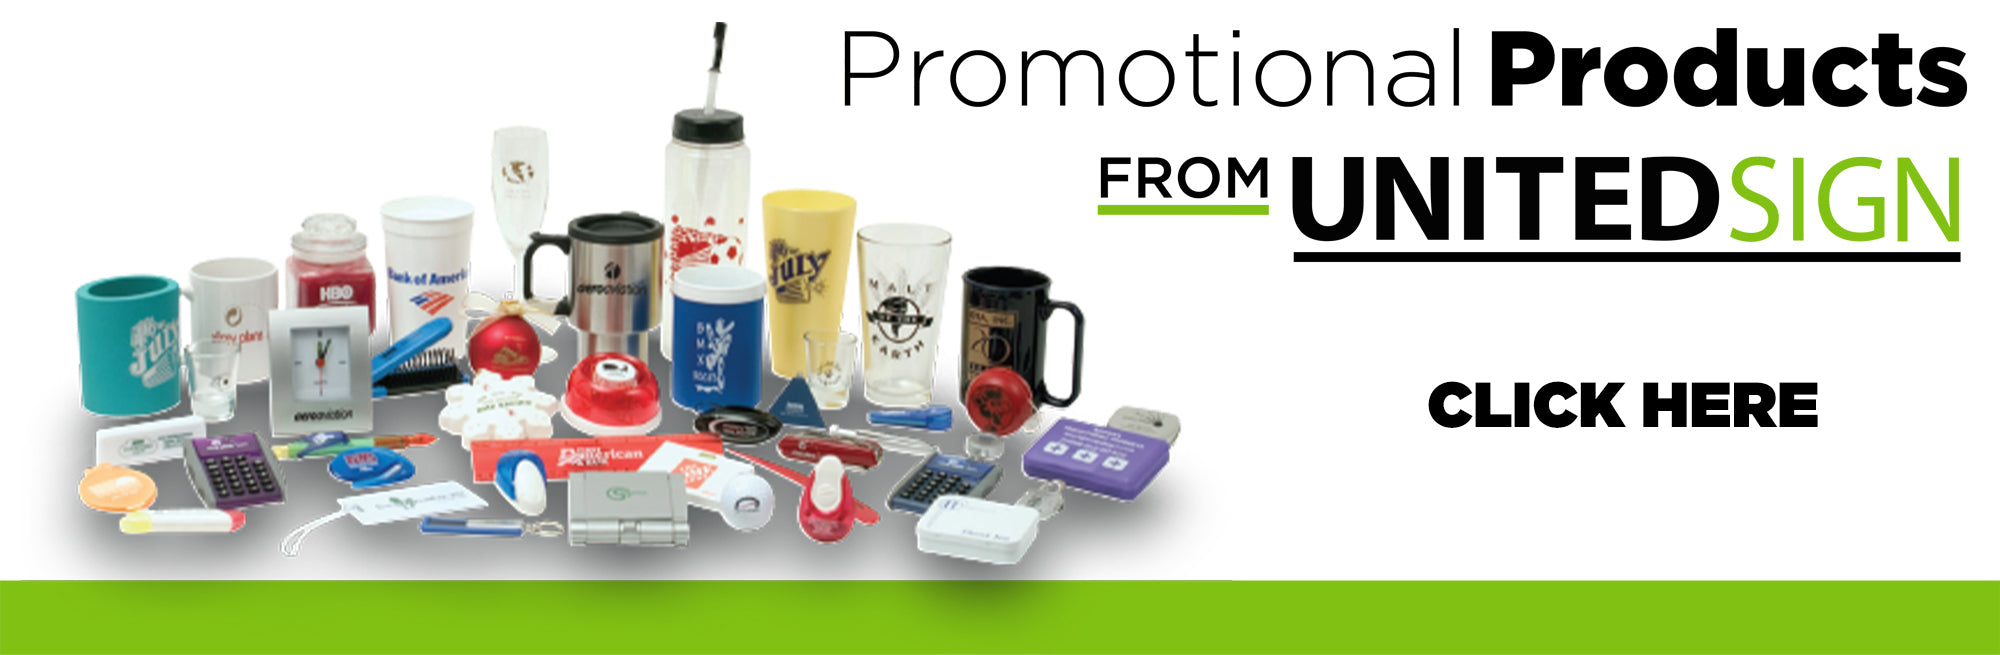 Promotional Products from UnitedSign